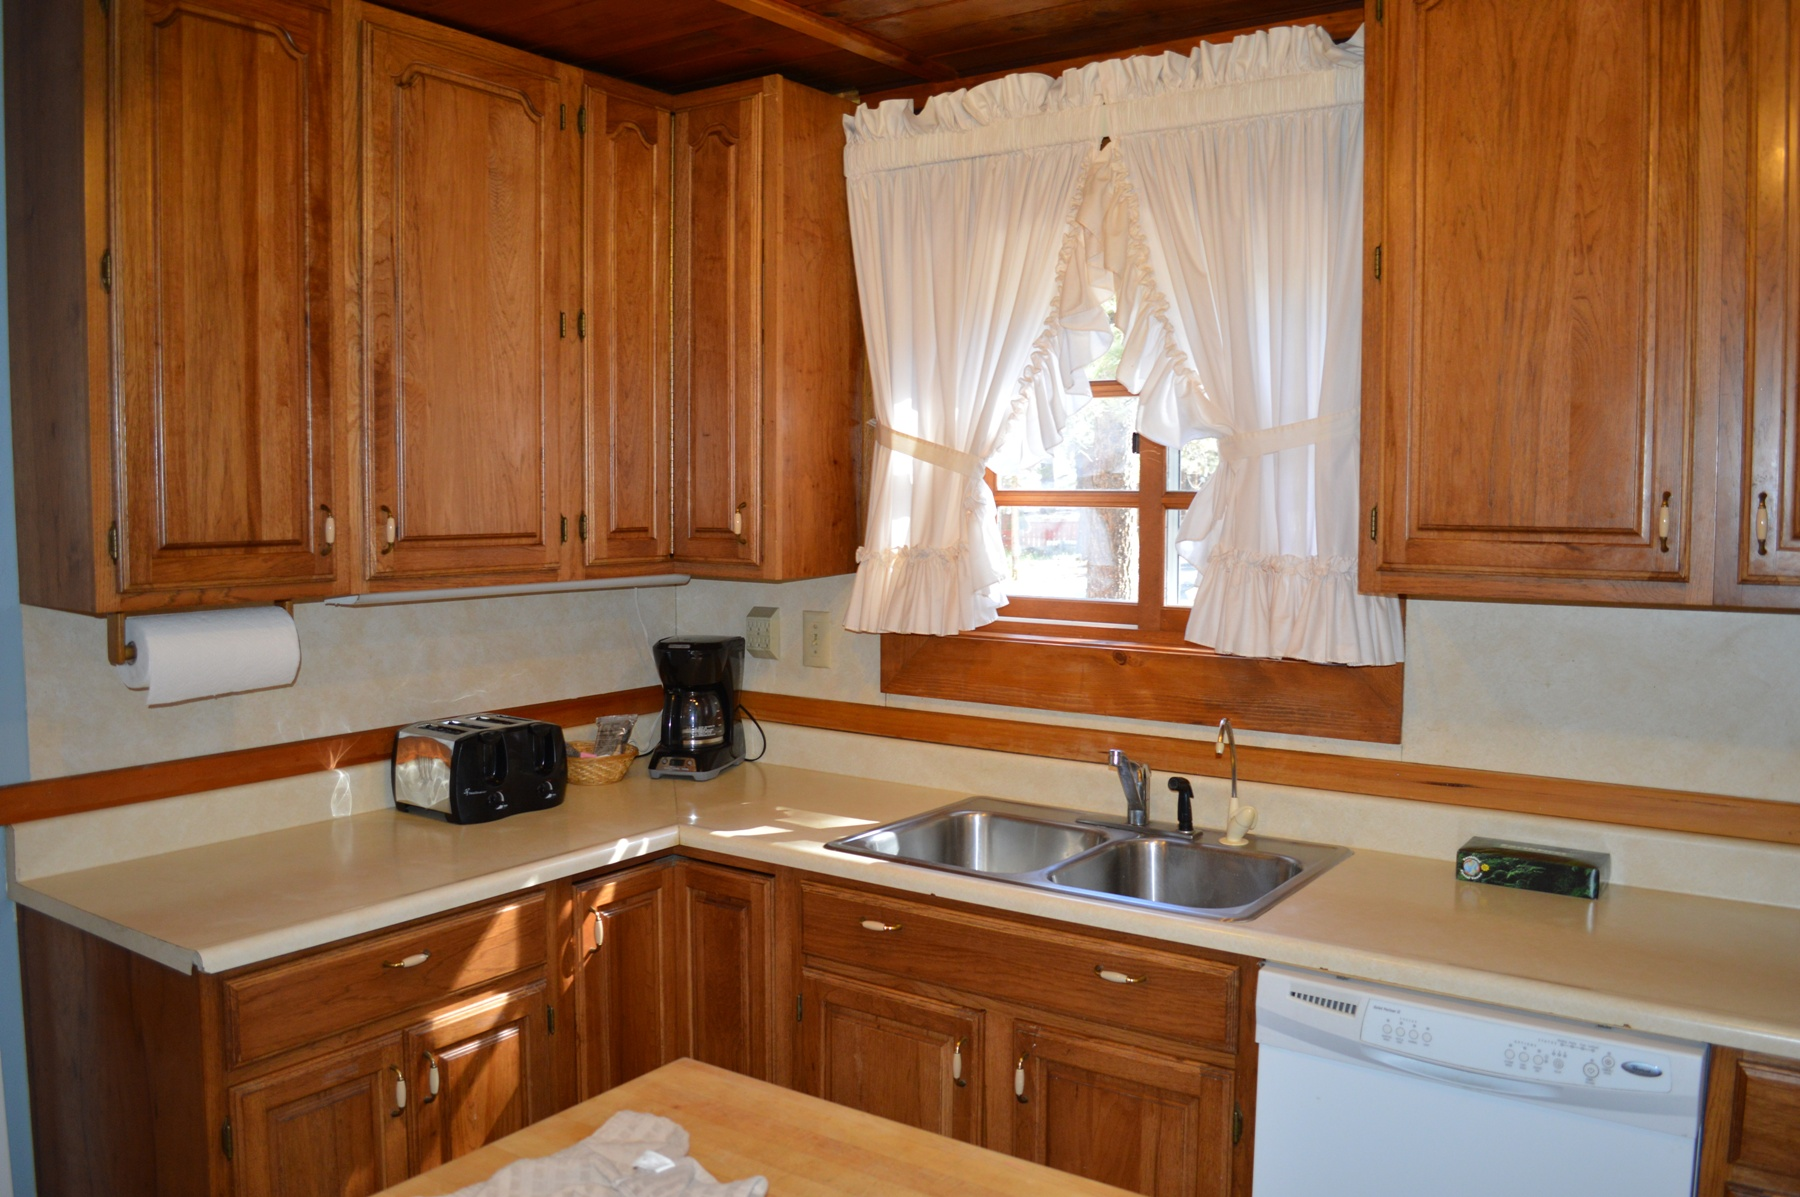 Double sink with all amenities for a great breakfast with a toas